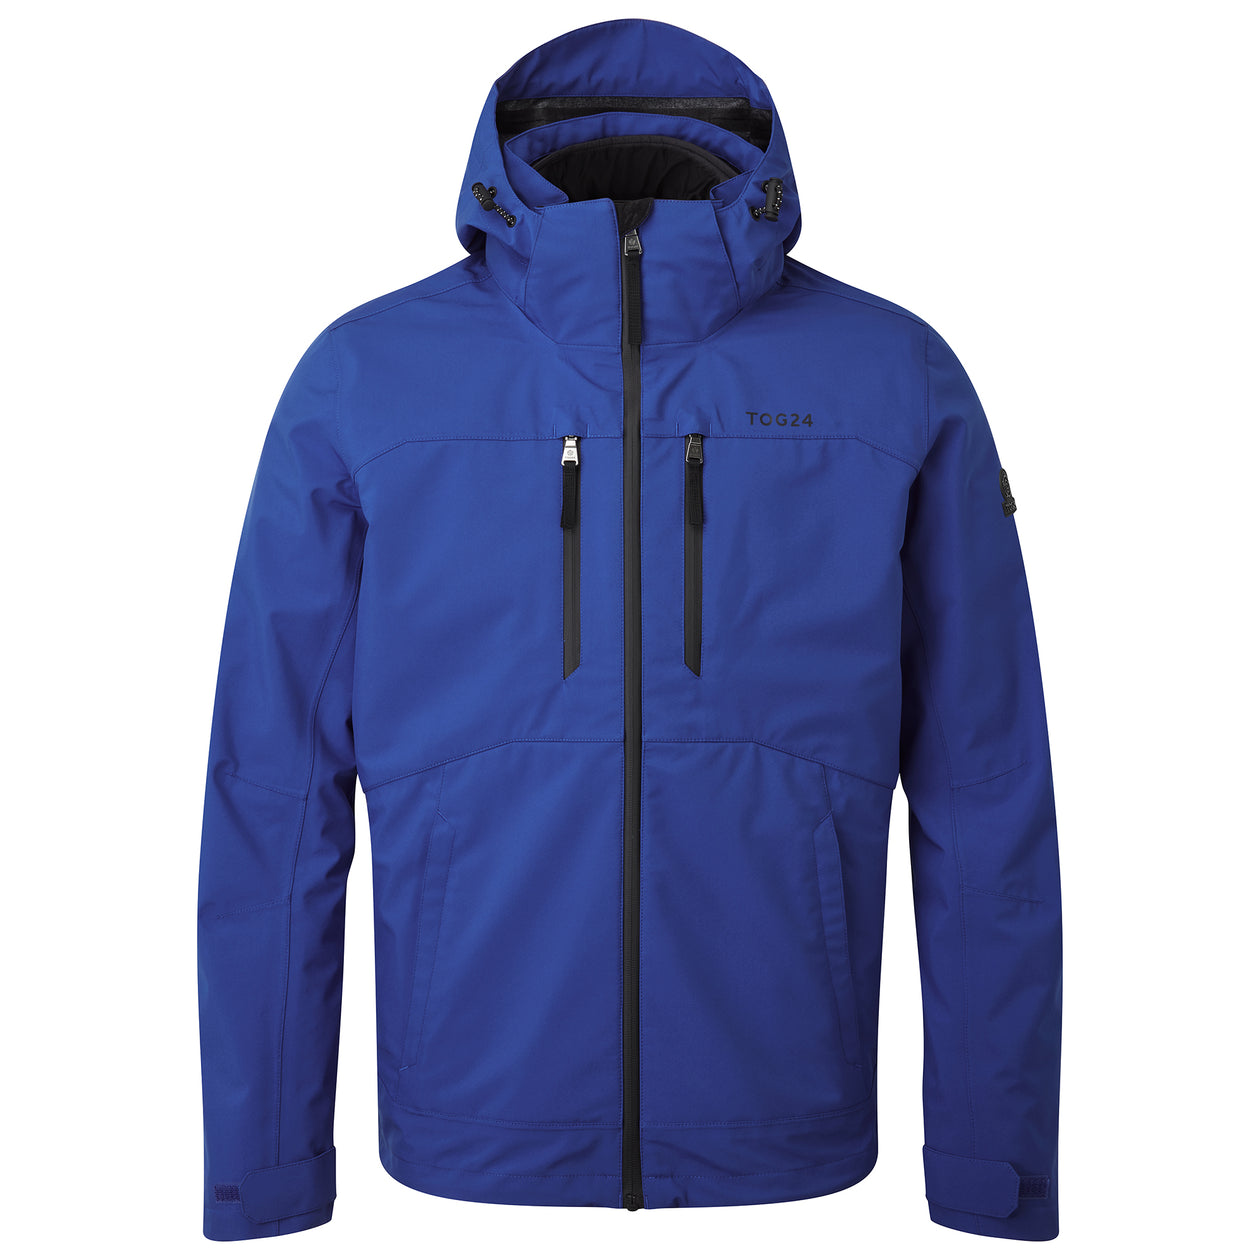 Denton Mens Waterproof 3-in-1 Jacket - Royal Blue image 4